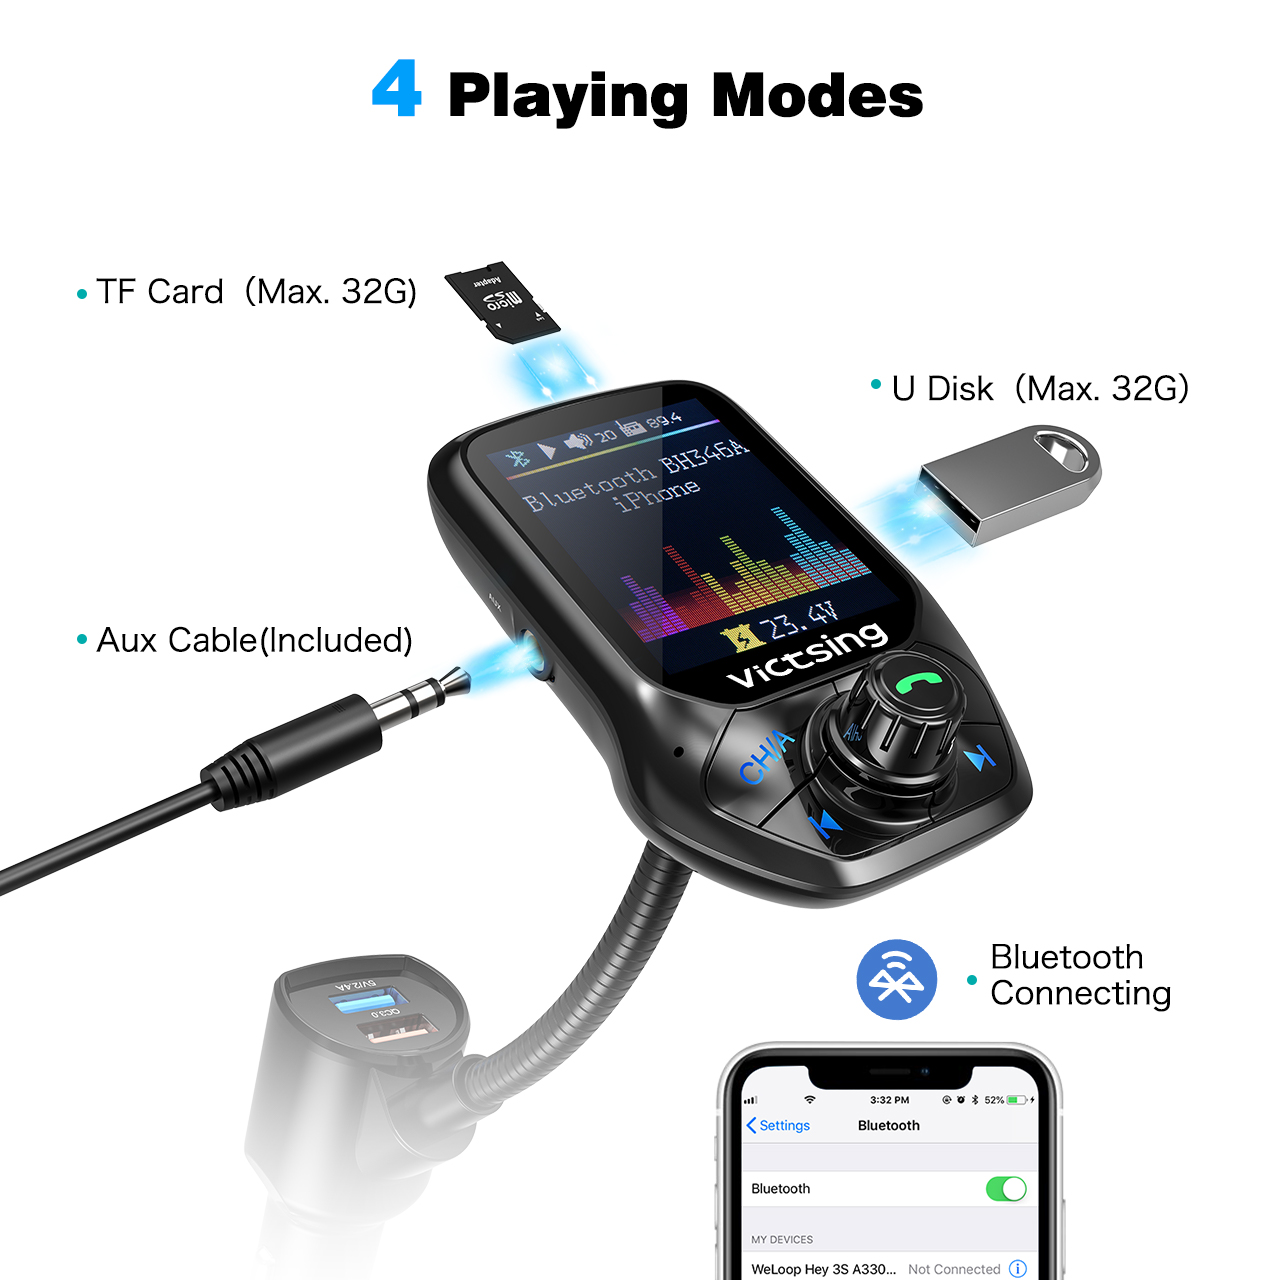 VicTsing QC3.0 Car Bluetooth FM Transmitter Voice Navigation and 2 USB Ports Support USB Flash Drive Wireless Bluetooth FM Radio Adapter Music Player Car Kit with Hands Free Calls